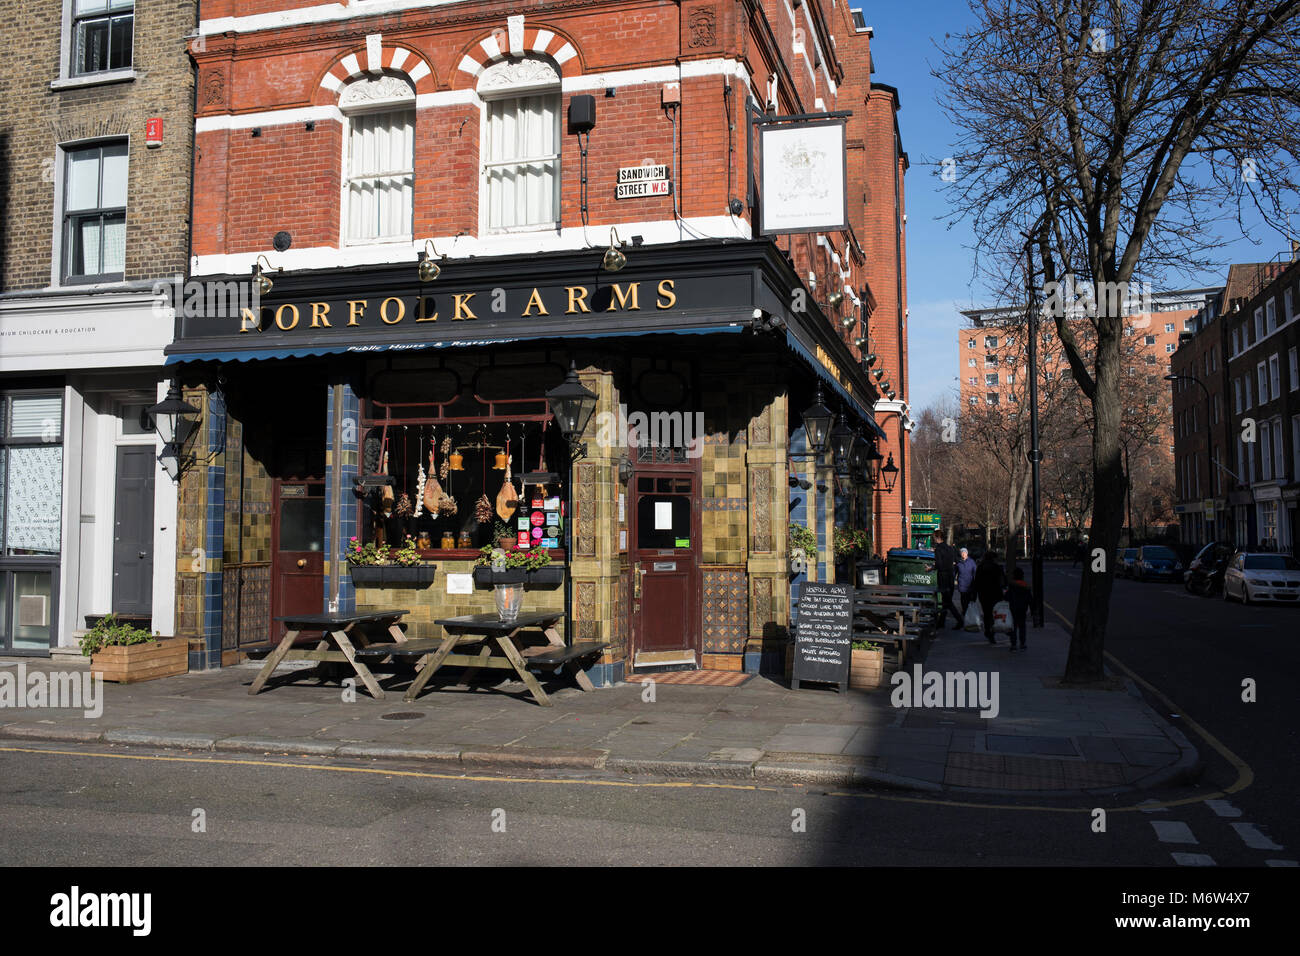 Norfolk Arms pub in London, England, United Kingdom. (photo by Mike Kemp/In Pictures via Getty Images) Stock Photo